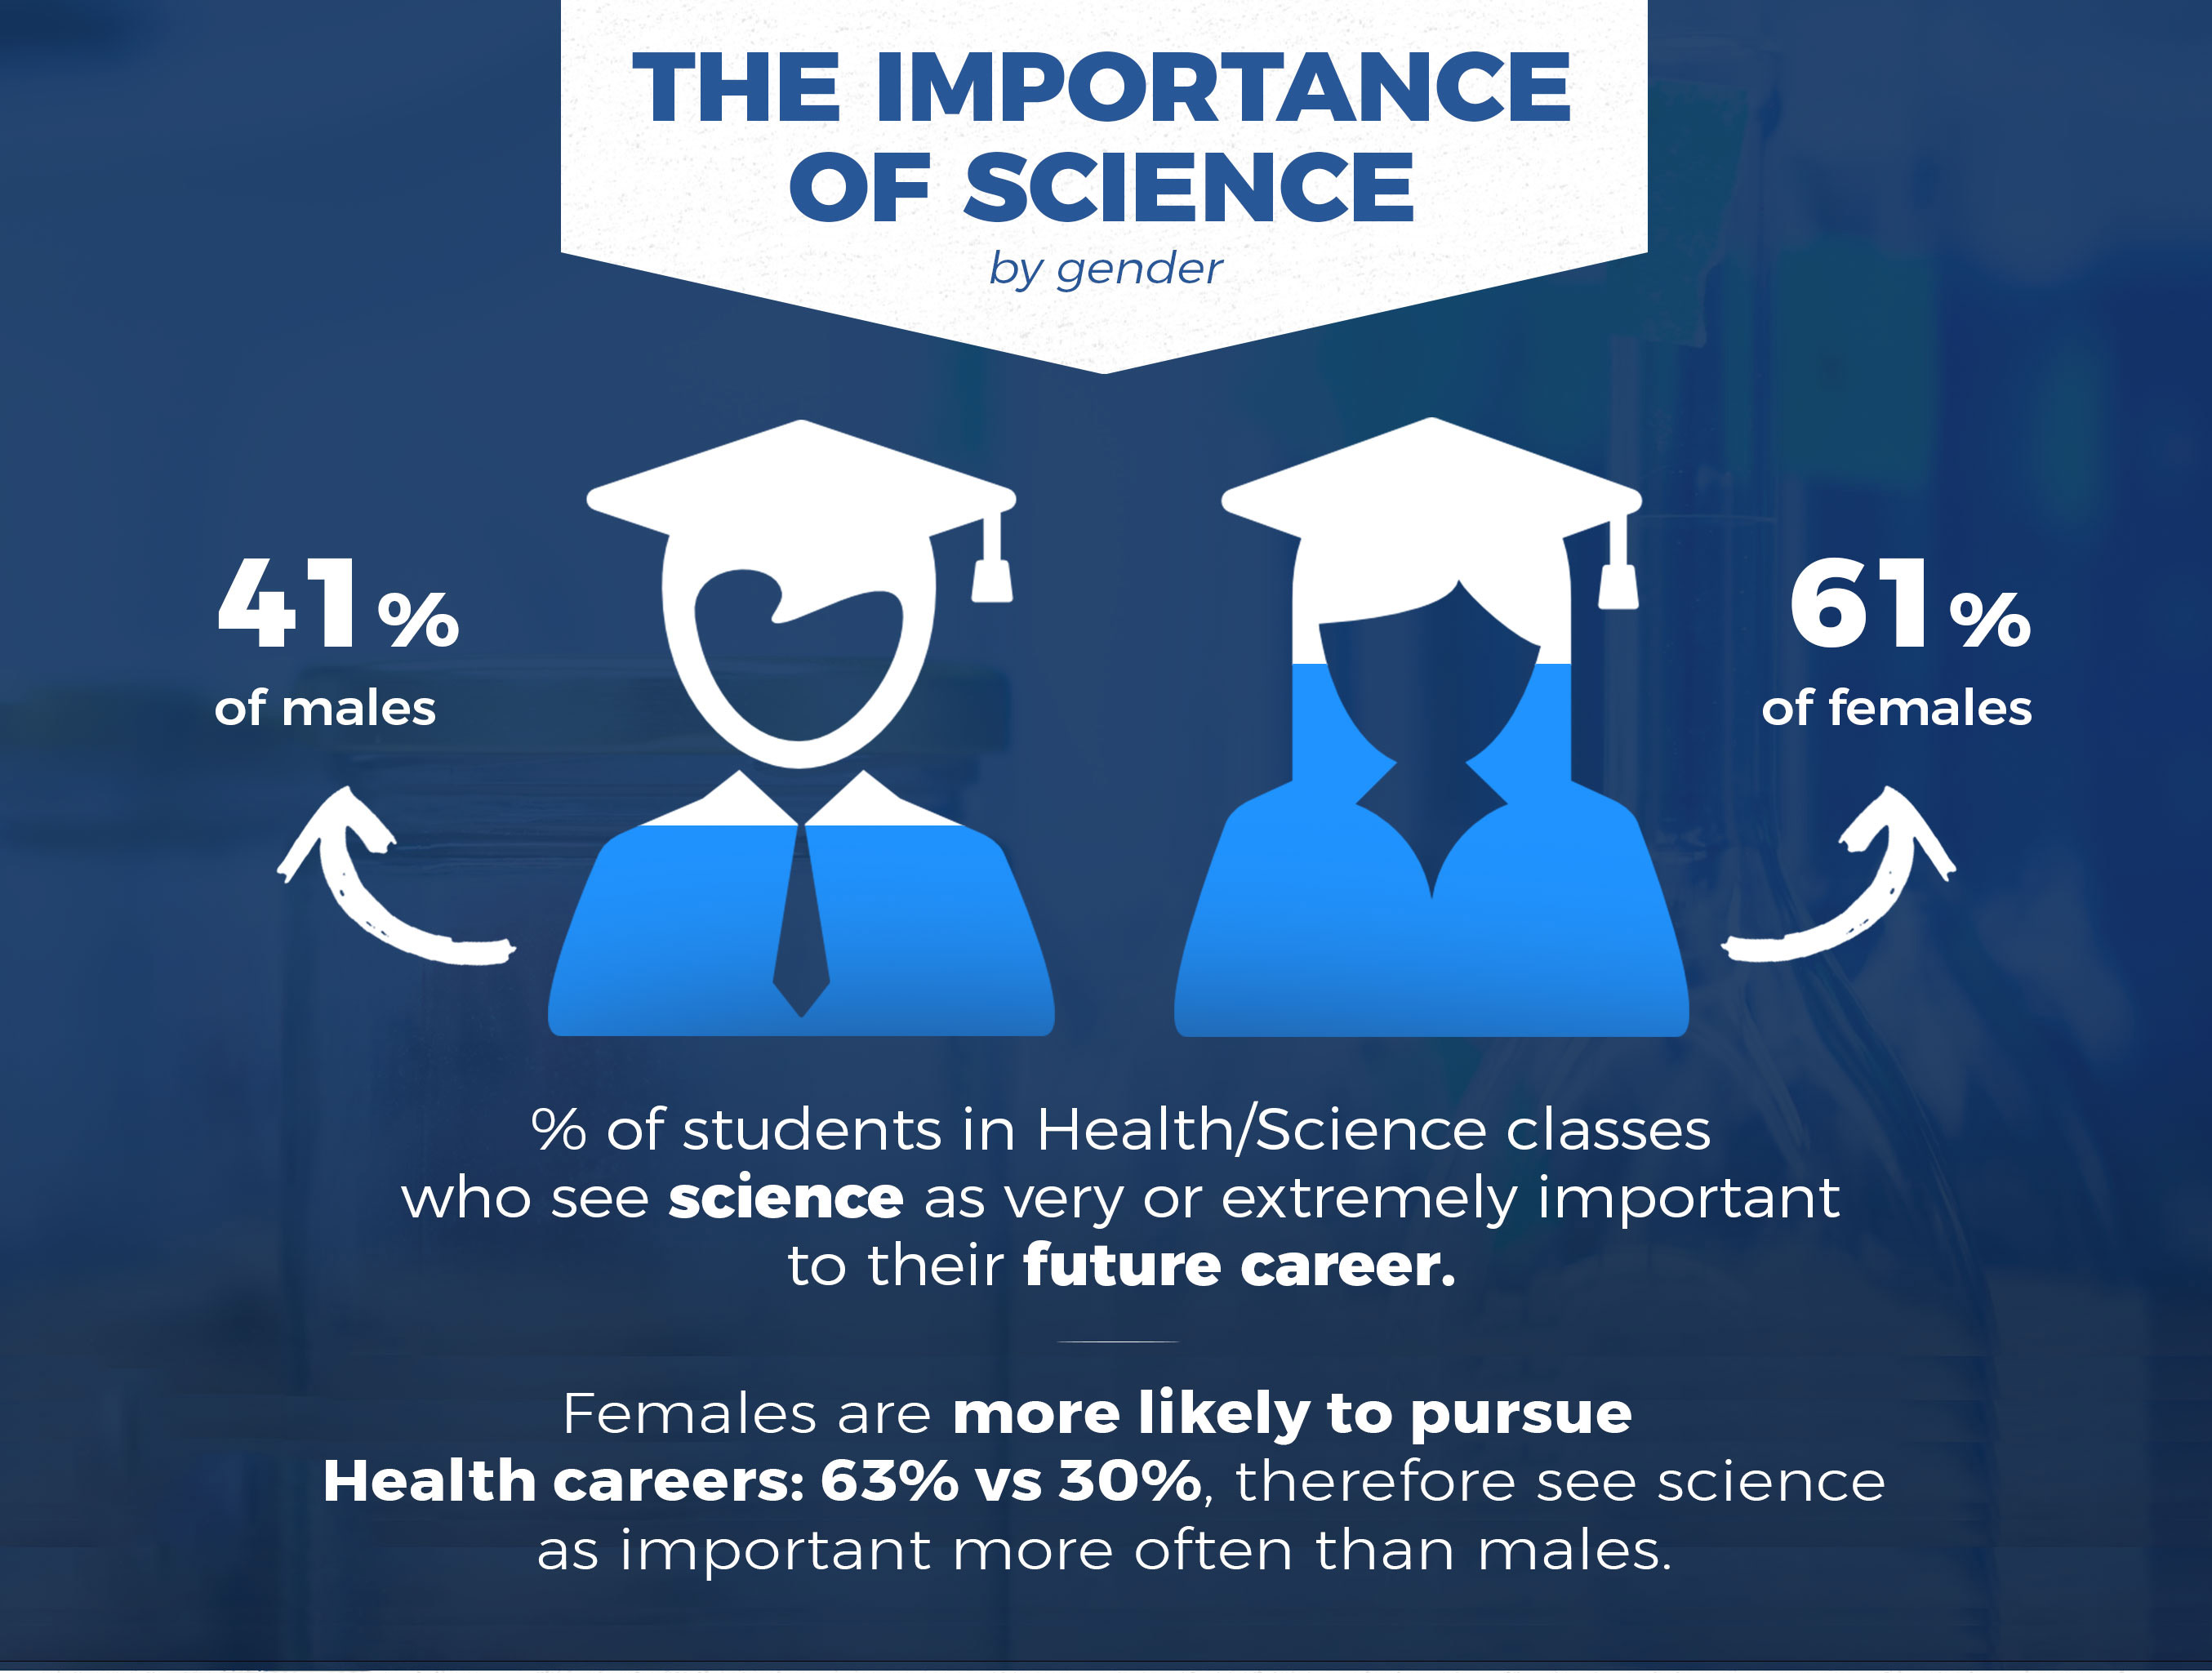 science health careers career research important future student gender students